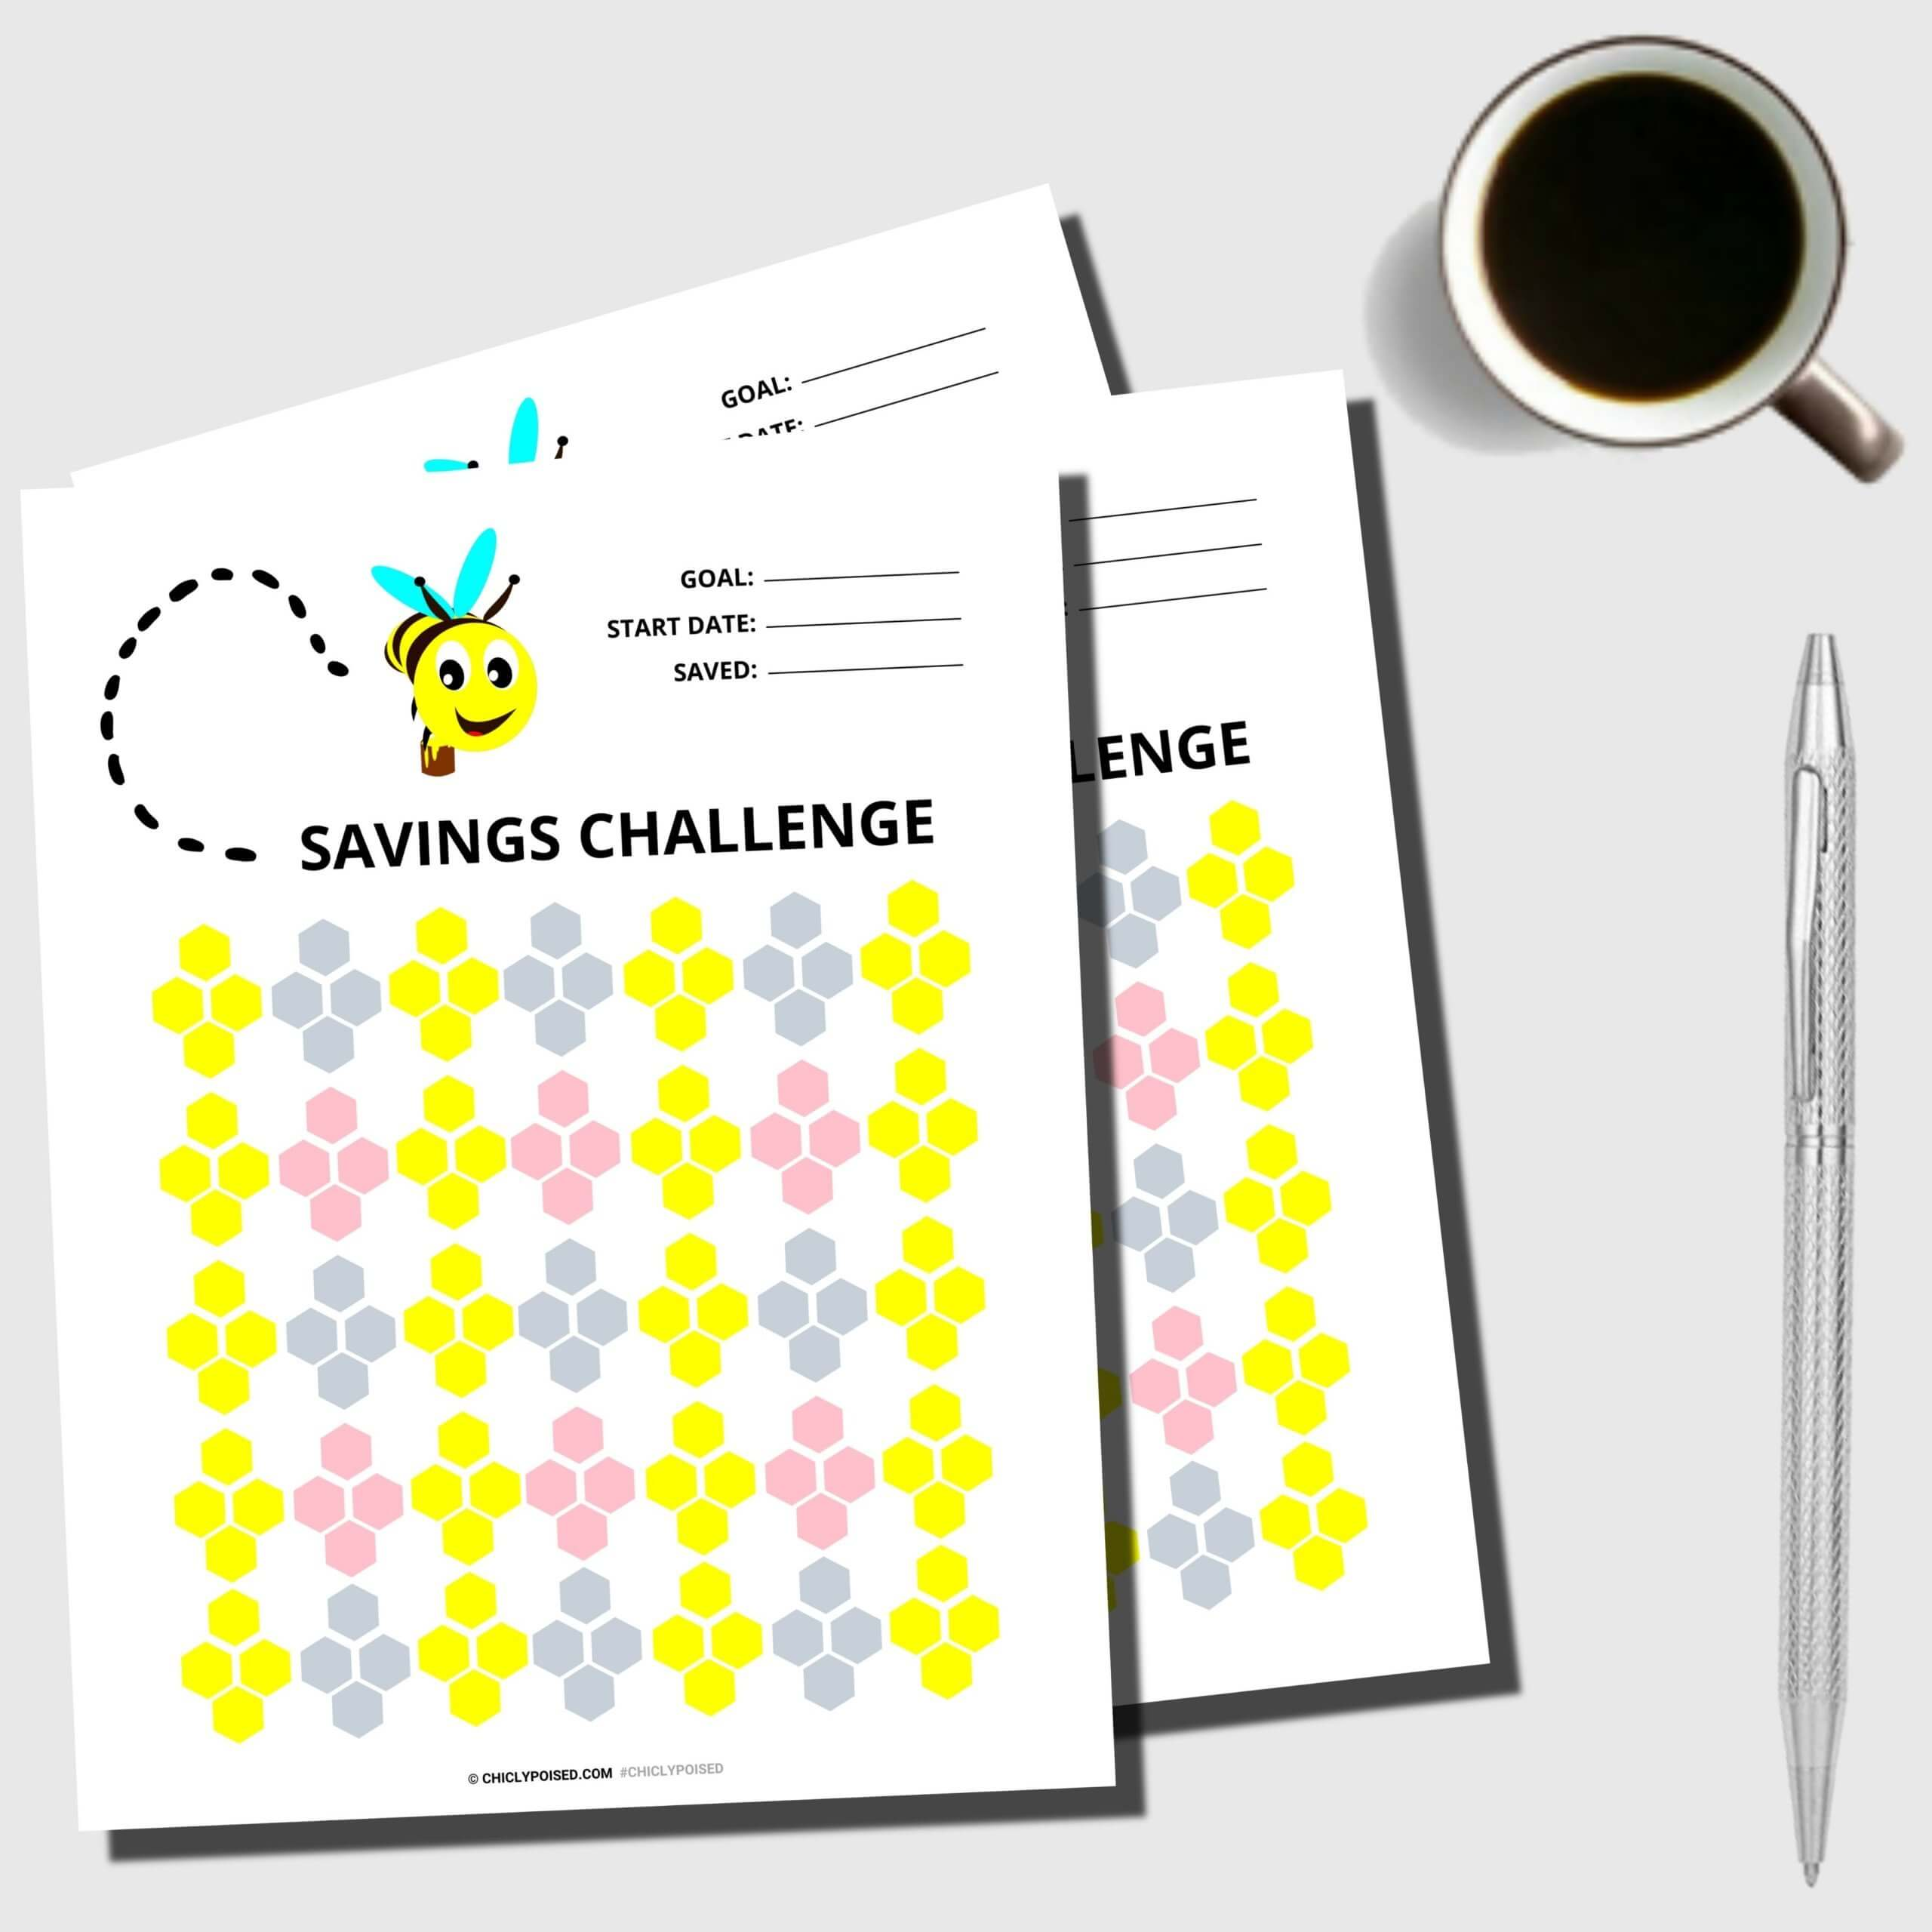 Savings Challenge Printable 2 of 5